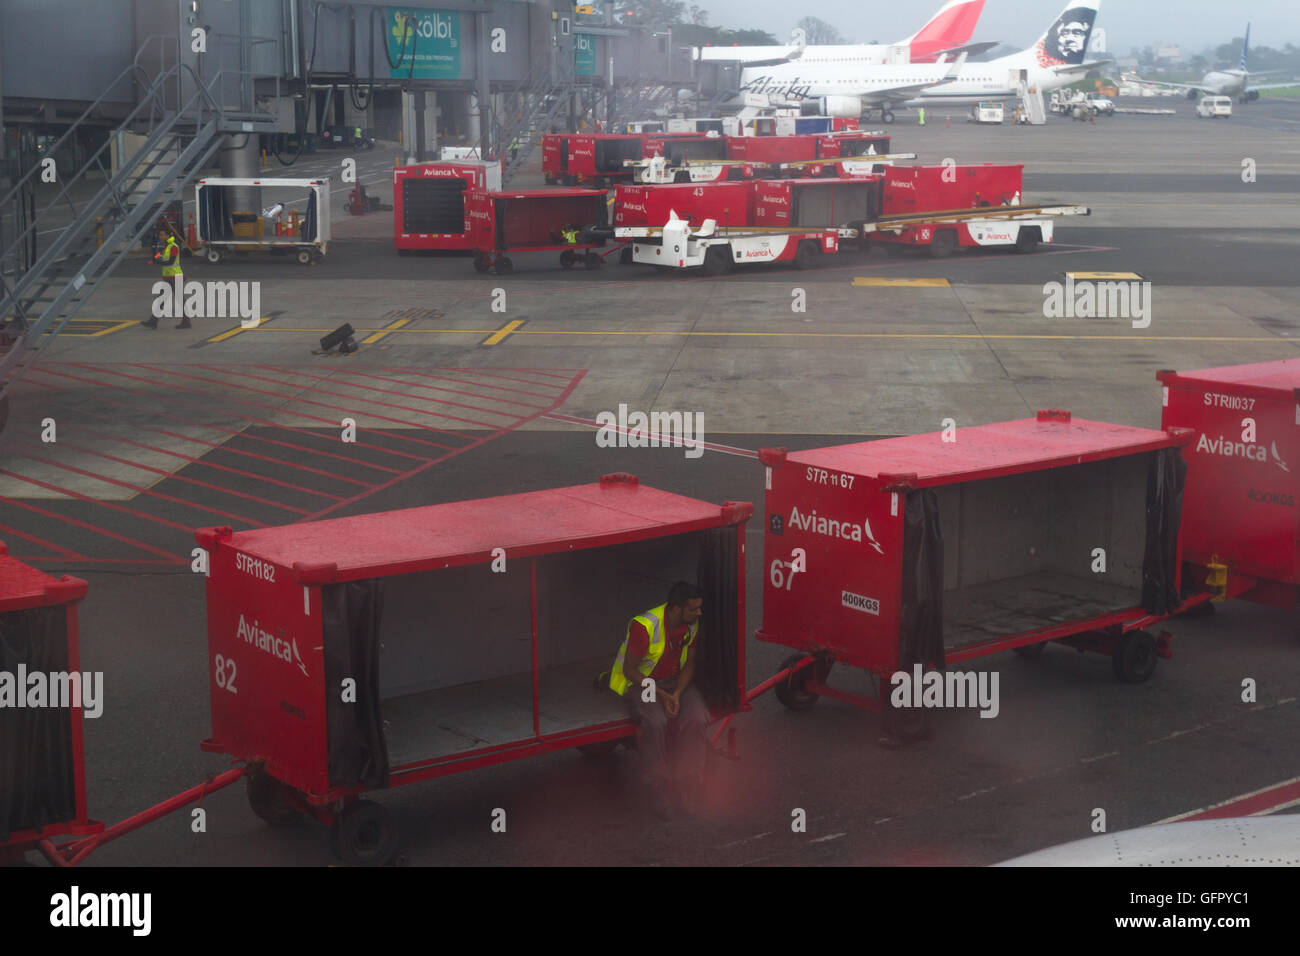 Costa Rica - May 09 : View of the workings on a rainy day of the International SJO airport, Costa Rica. May 09 2016 - Stock Image